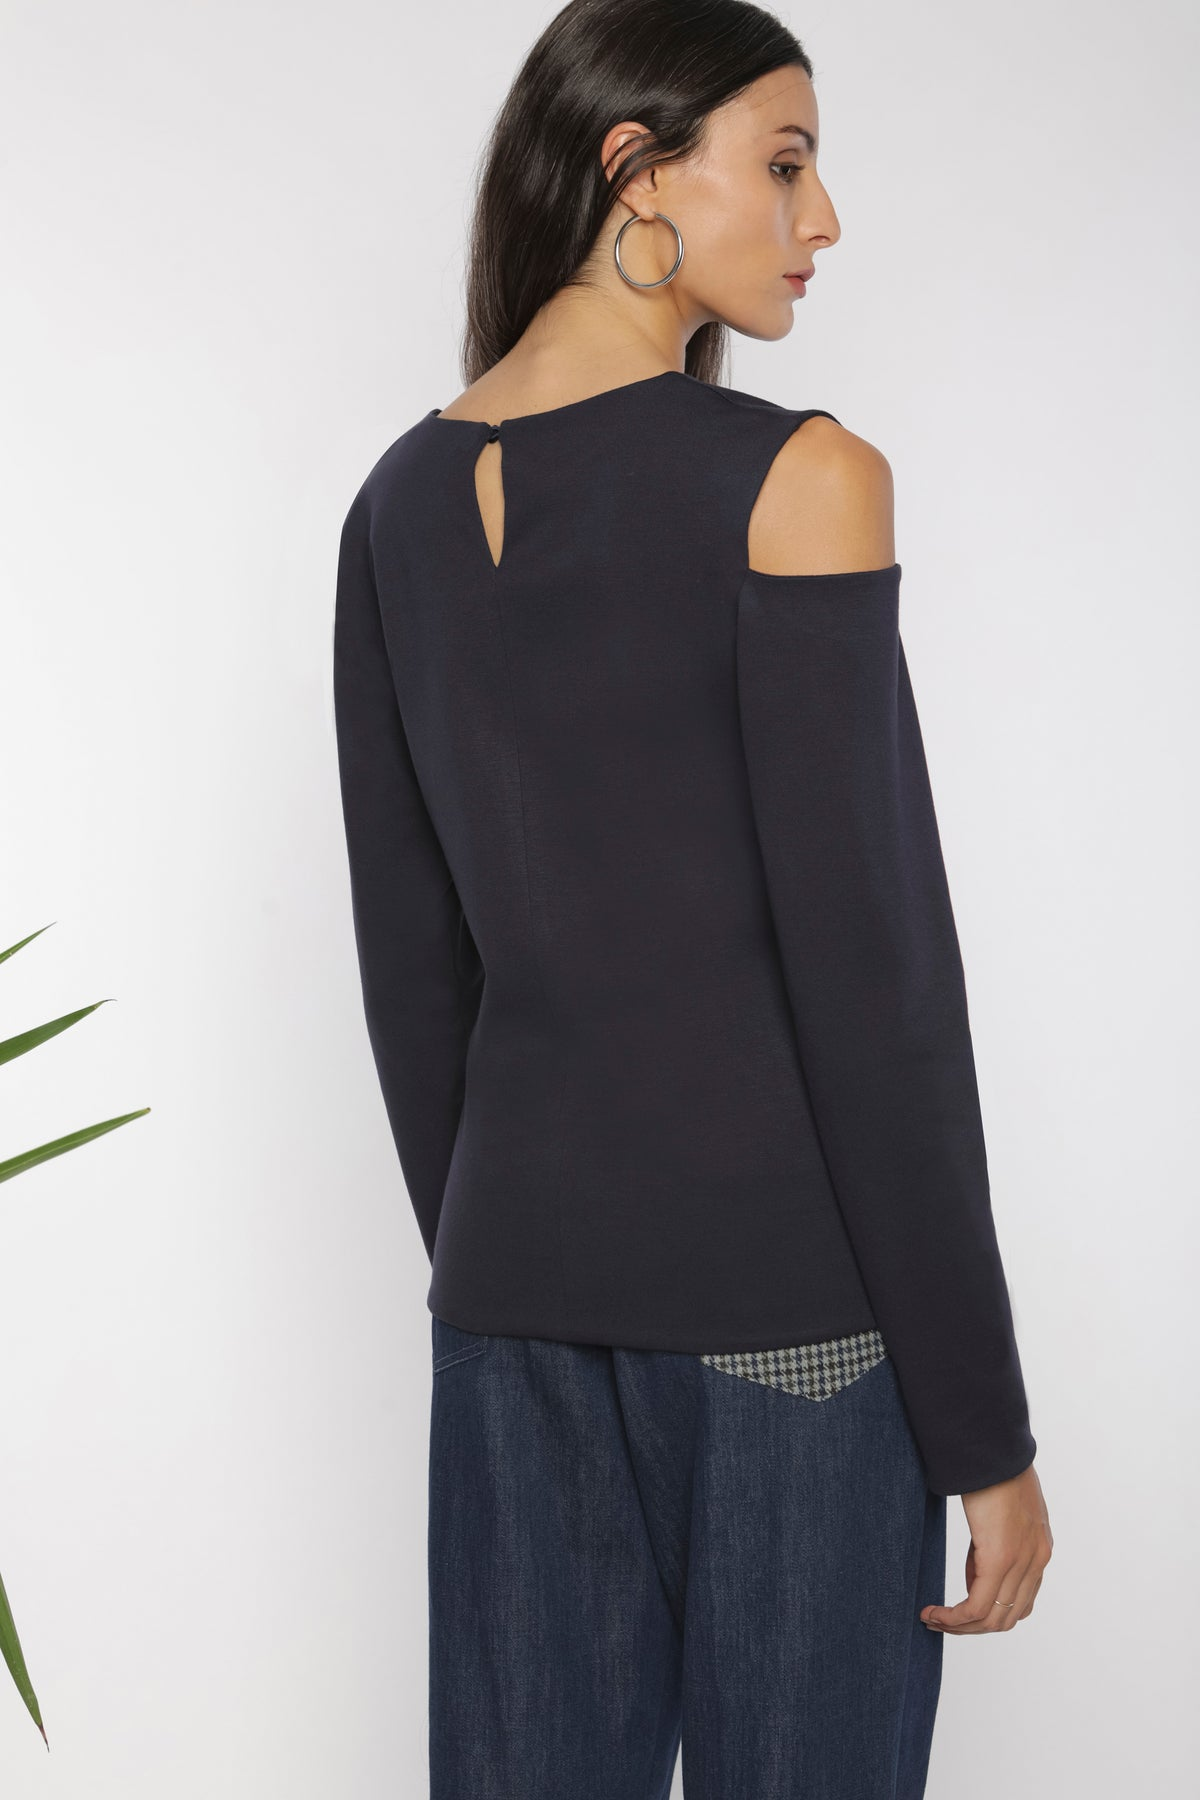 Wink knit top